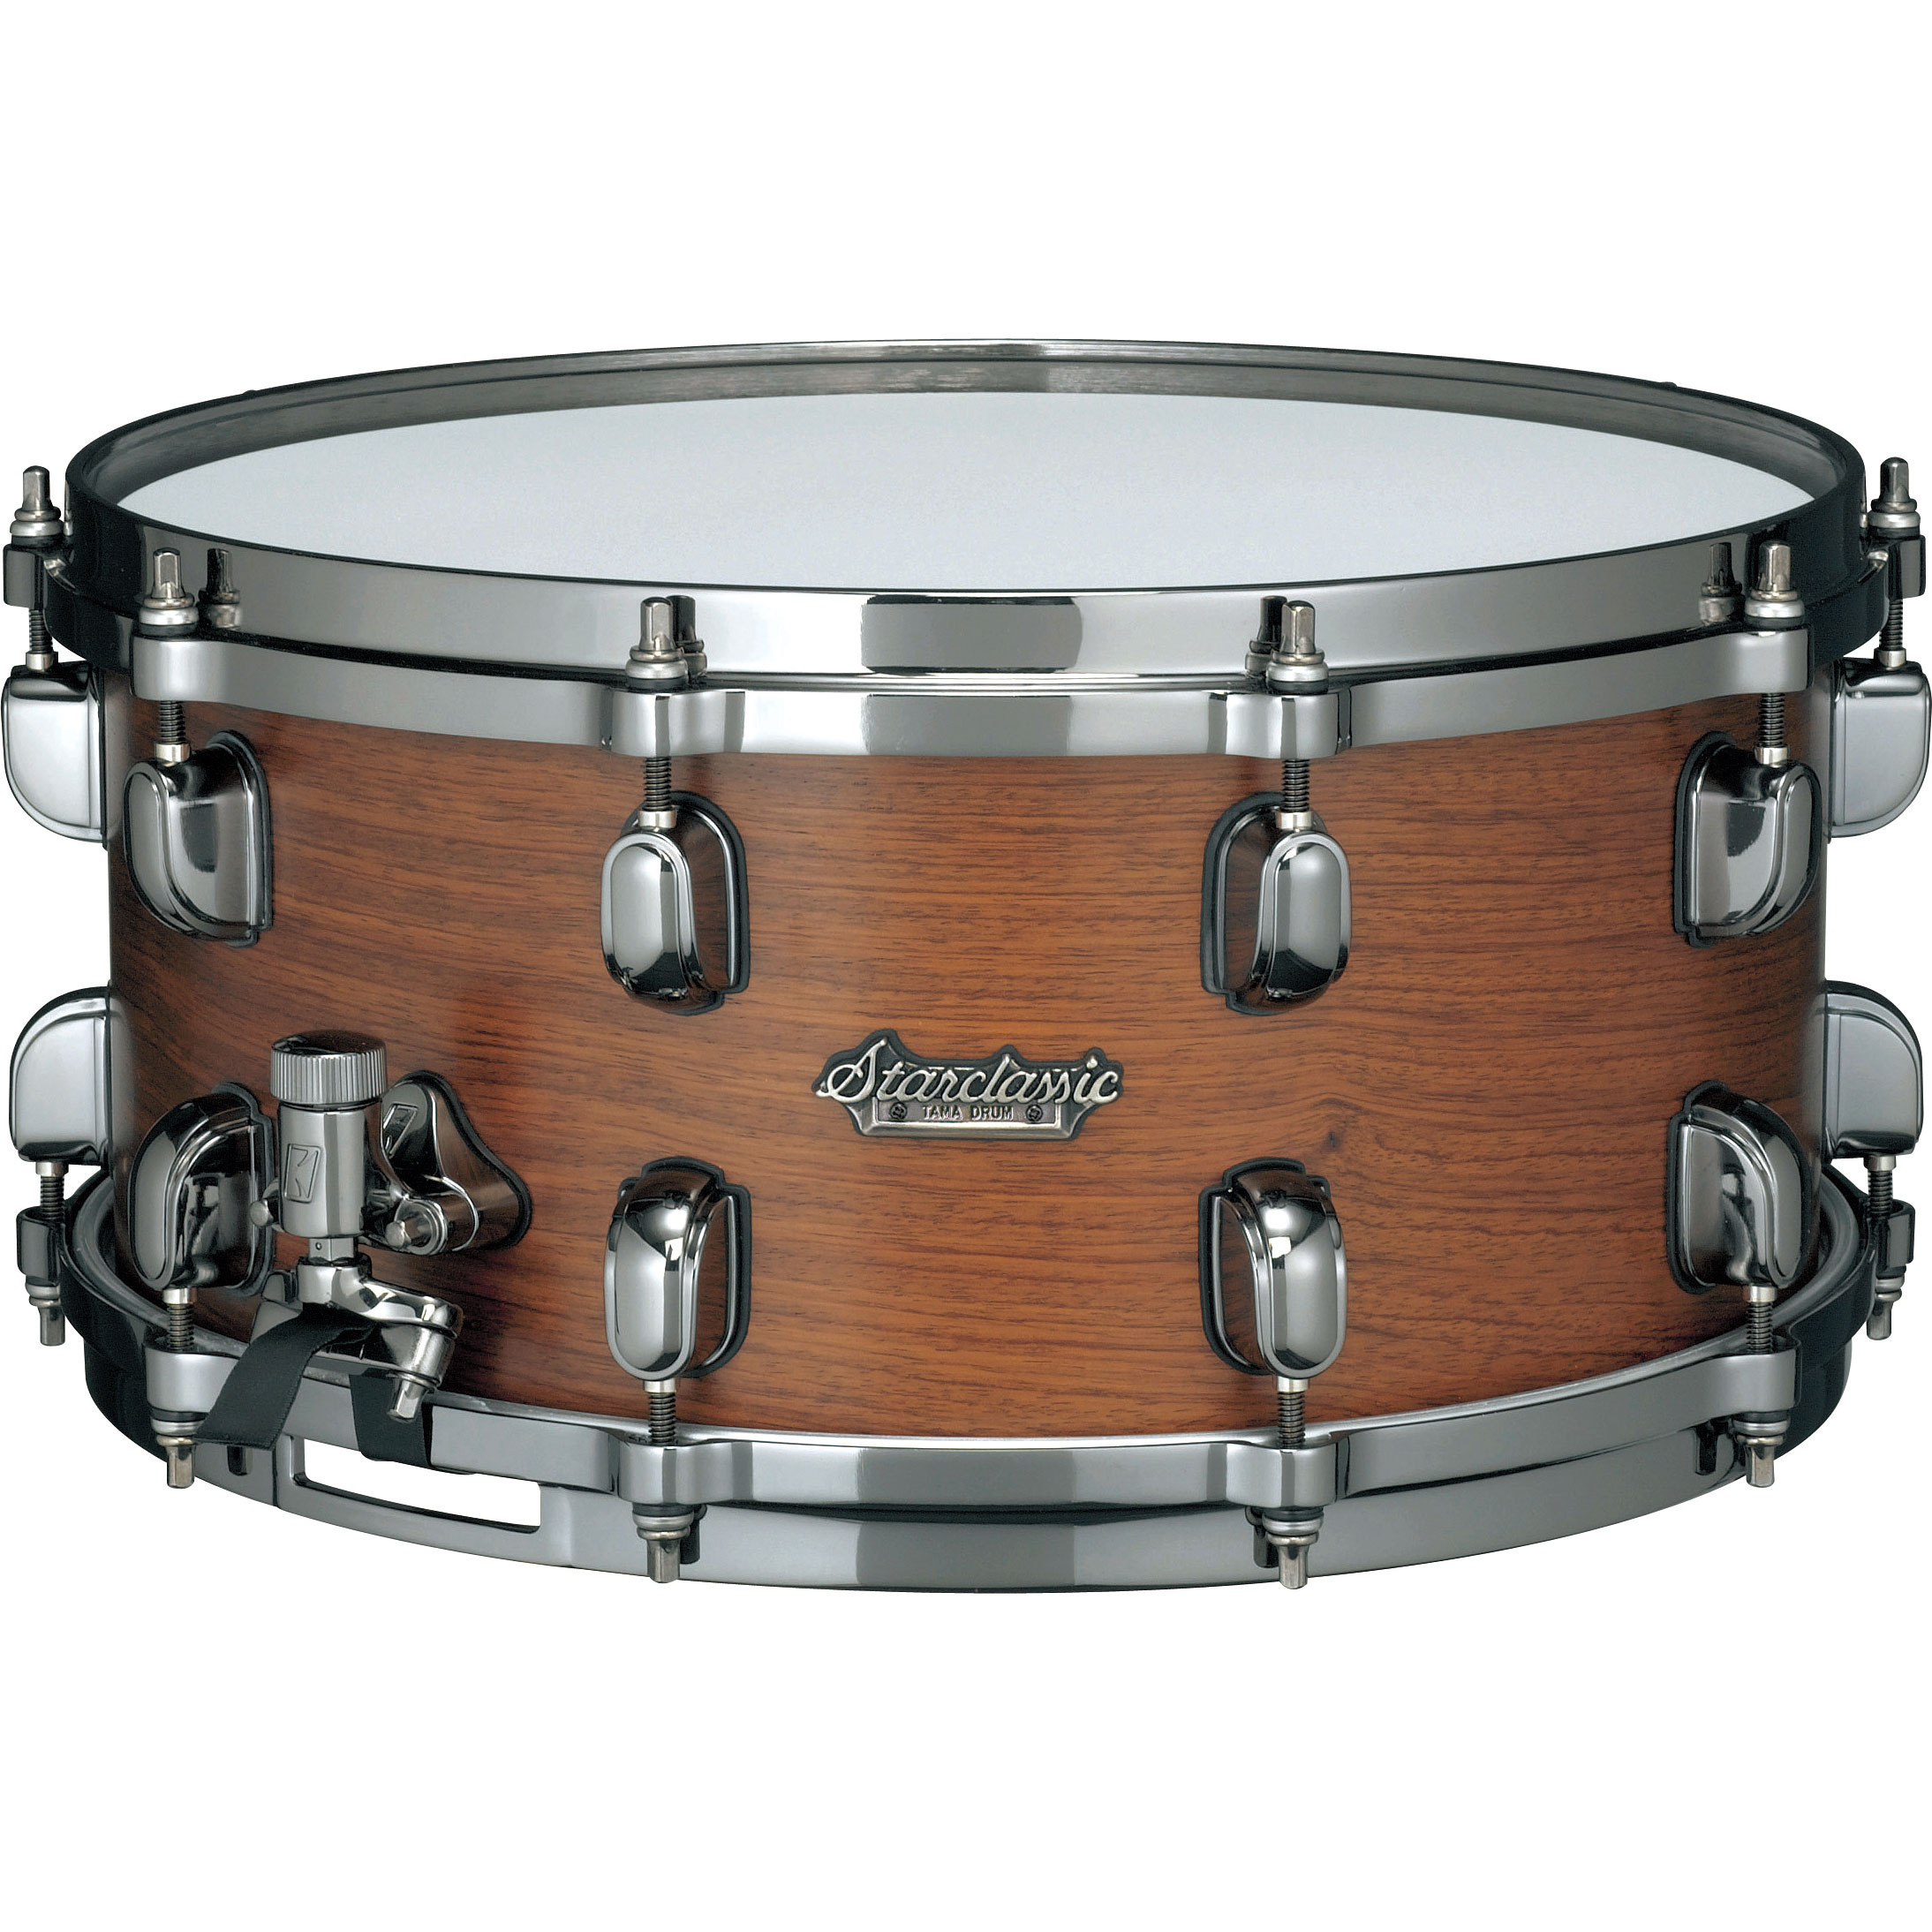 http://s2.lonestarpercussion.com/resize/images/product-image/Tama-BUS1465BN.jpg